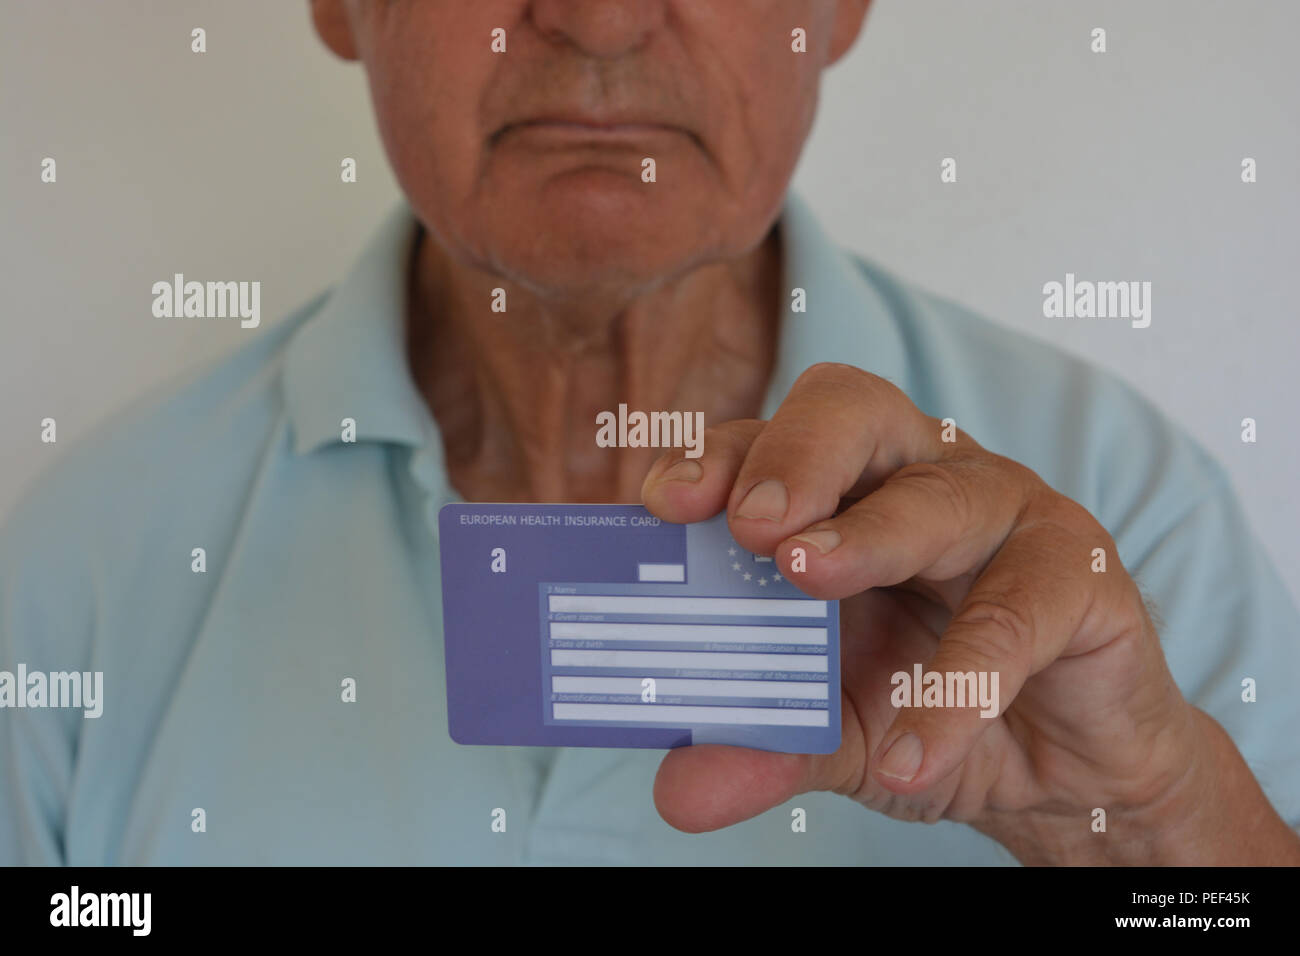 Man holding a European Health Insurance Card from the UK, selective focus on the card - Stock Image